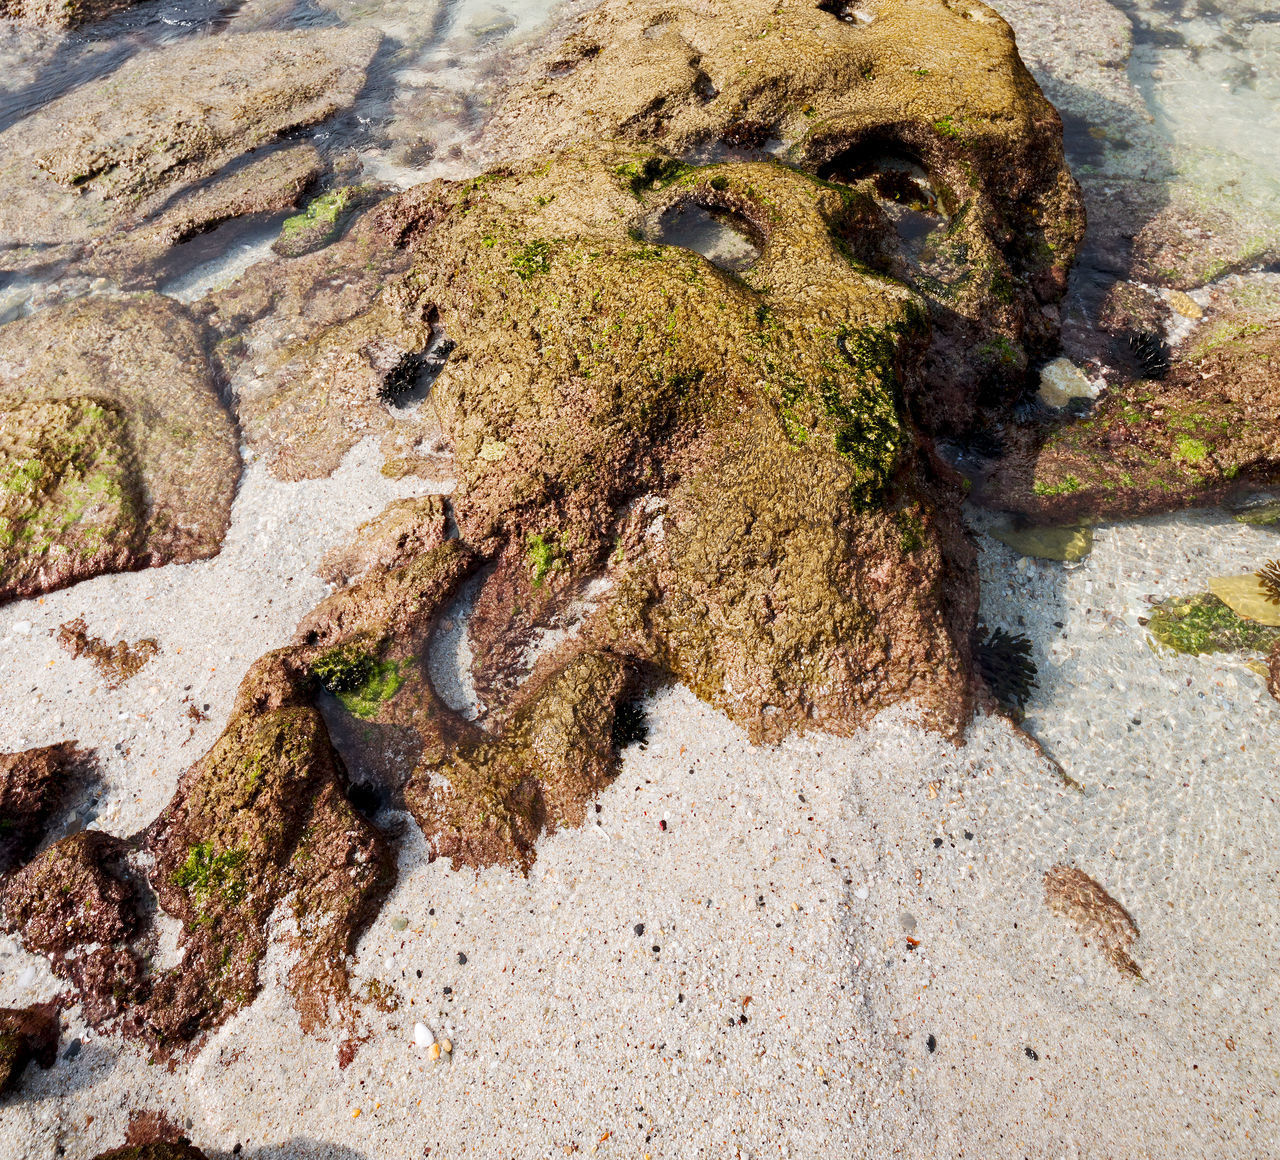 no people, nature, day, animal, close-up, animal themes, water, moss, land, plant, high angle view, textured, animal wildlife, animals in the wild, solid, outdoors, rock, growth, rough, beach